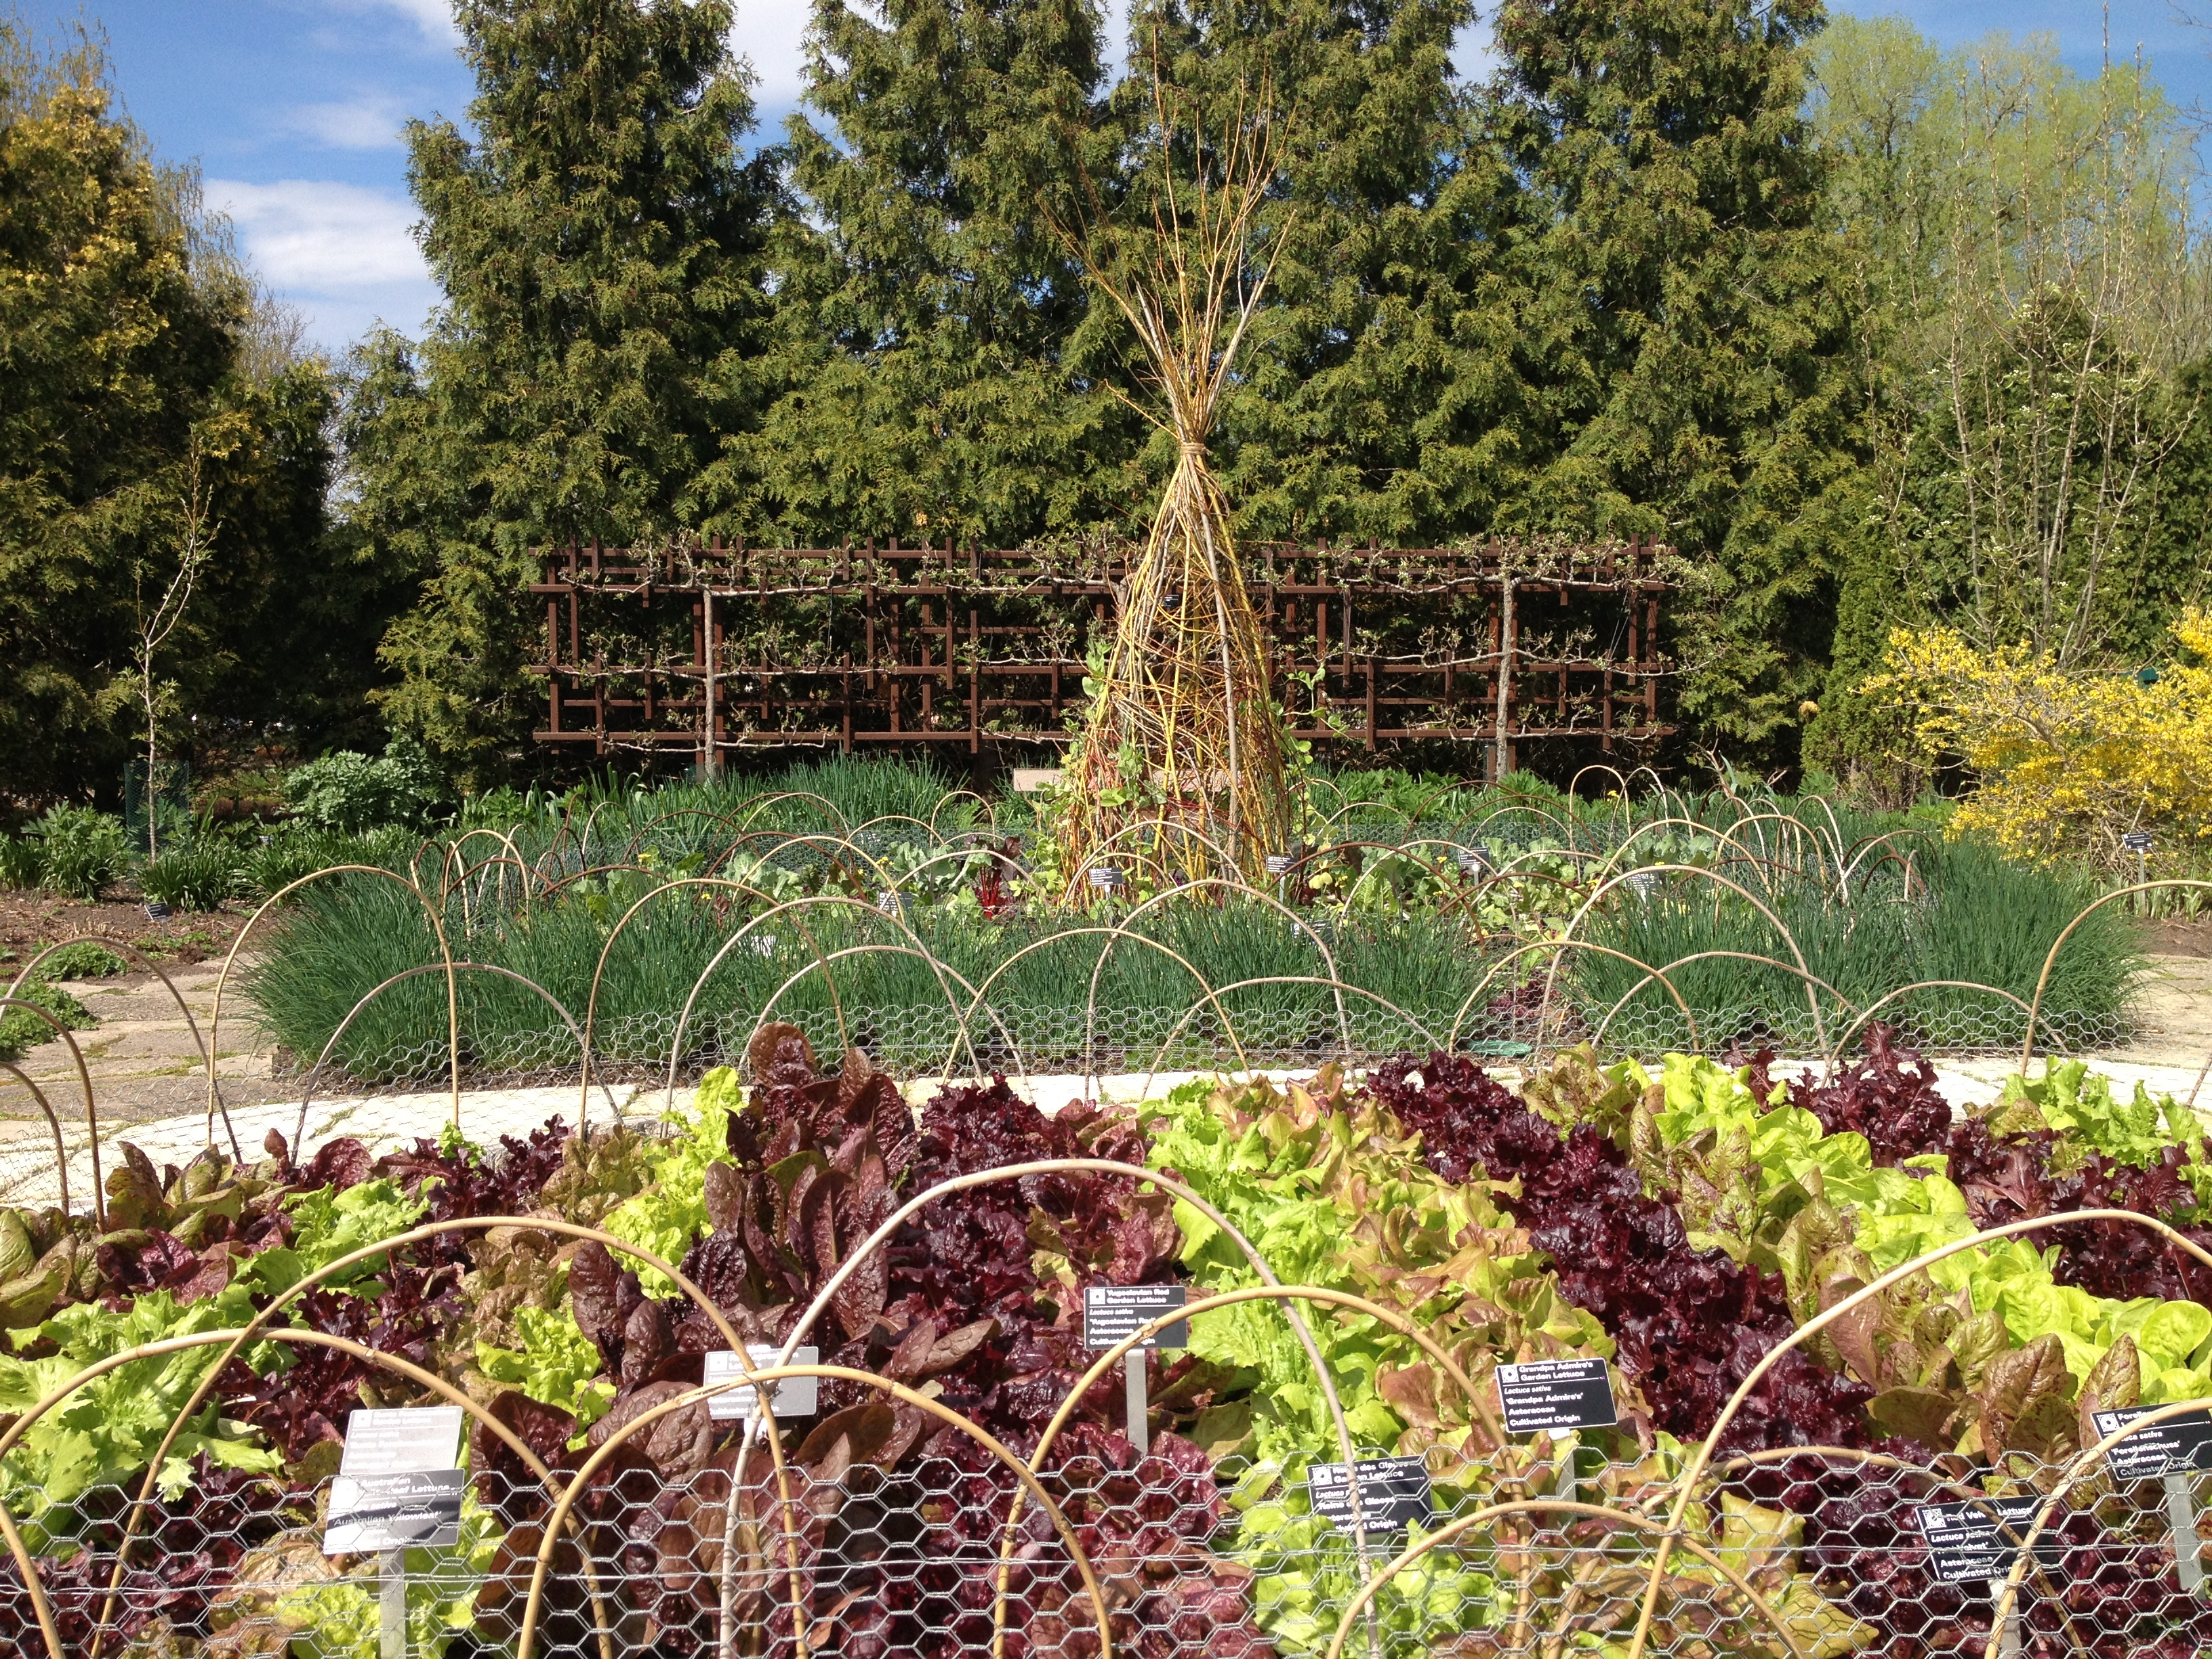 Permaculture: New course encourages sustainability, efficiency